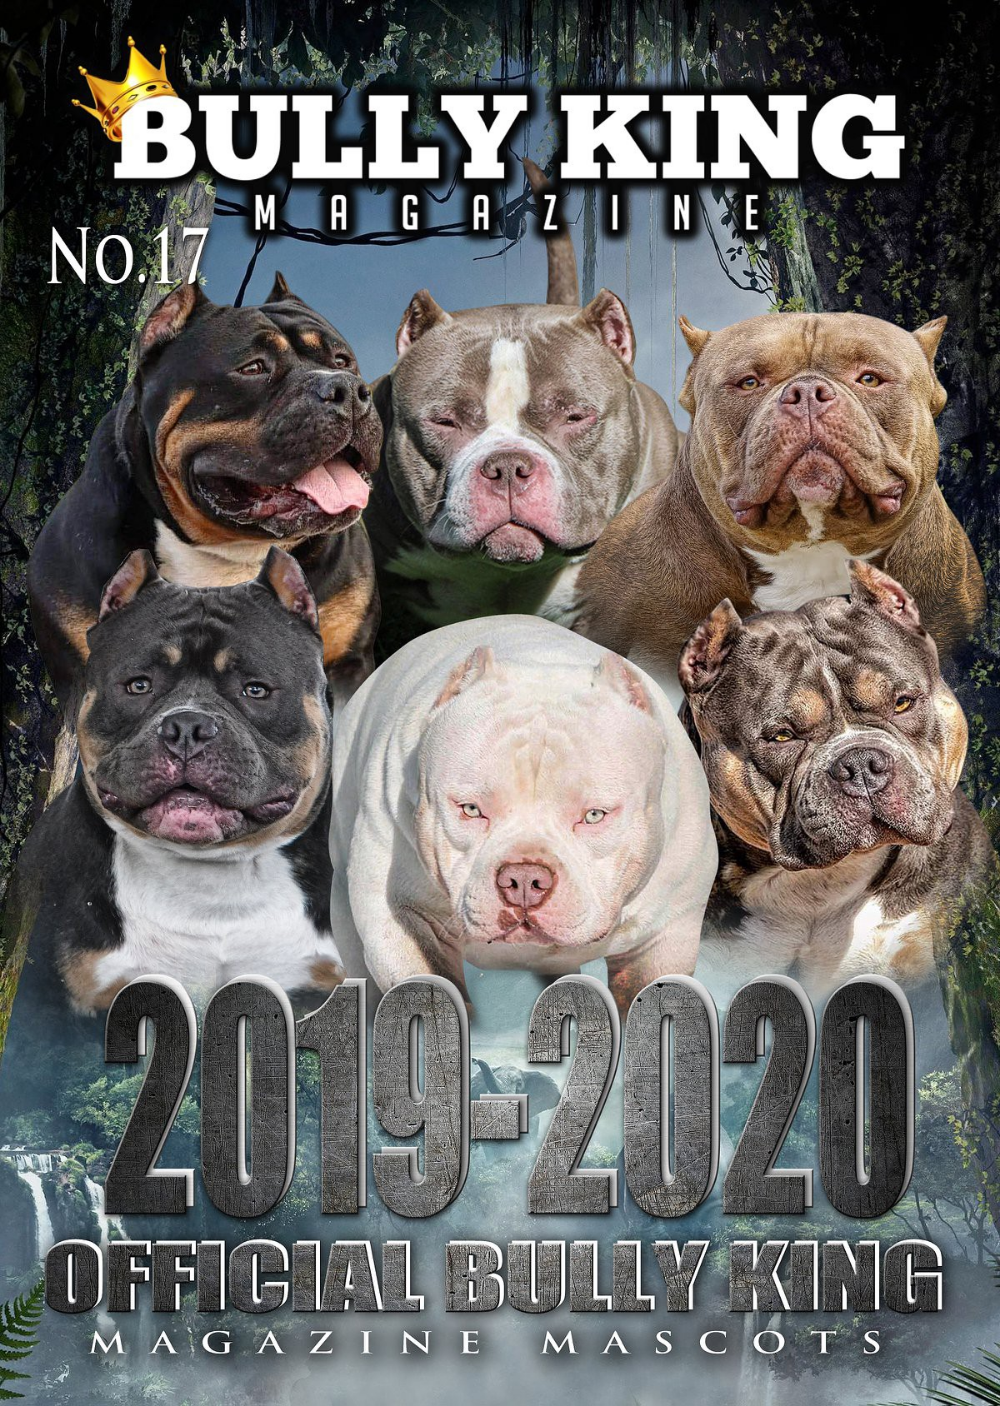 Introducing The 2019 2020 Bully King Magazine Mascots American Bully Bully Breeds The Little Polar Bear